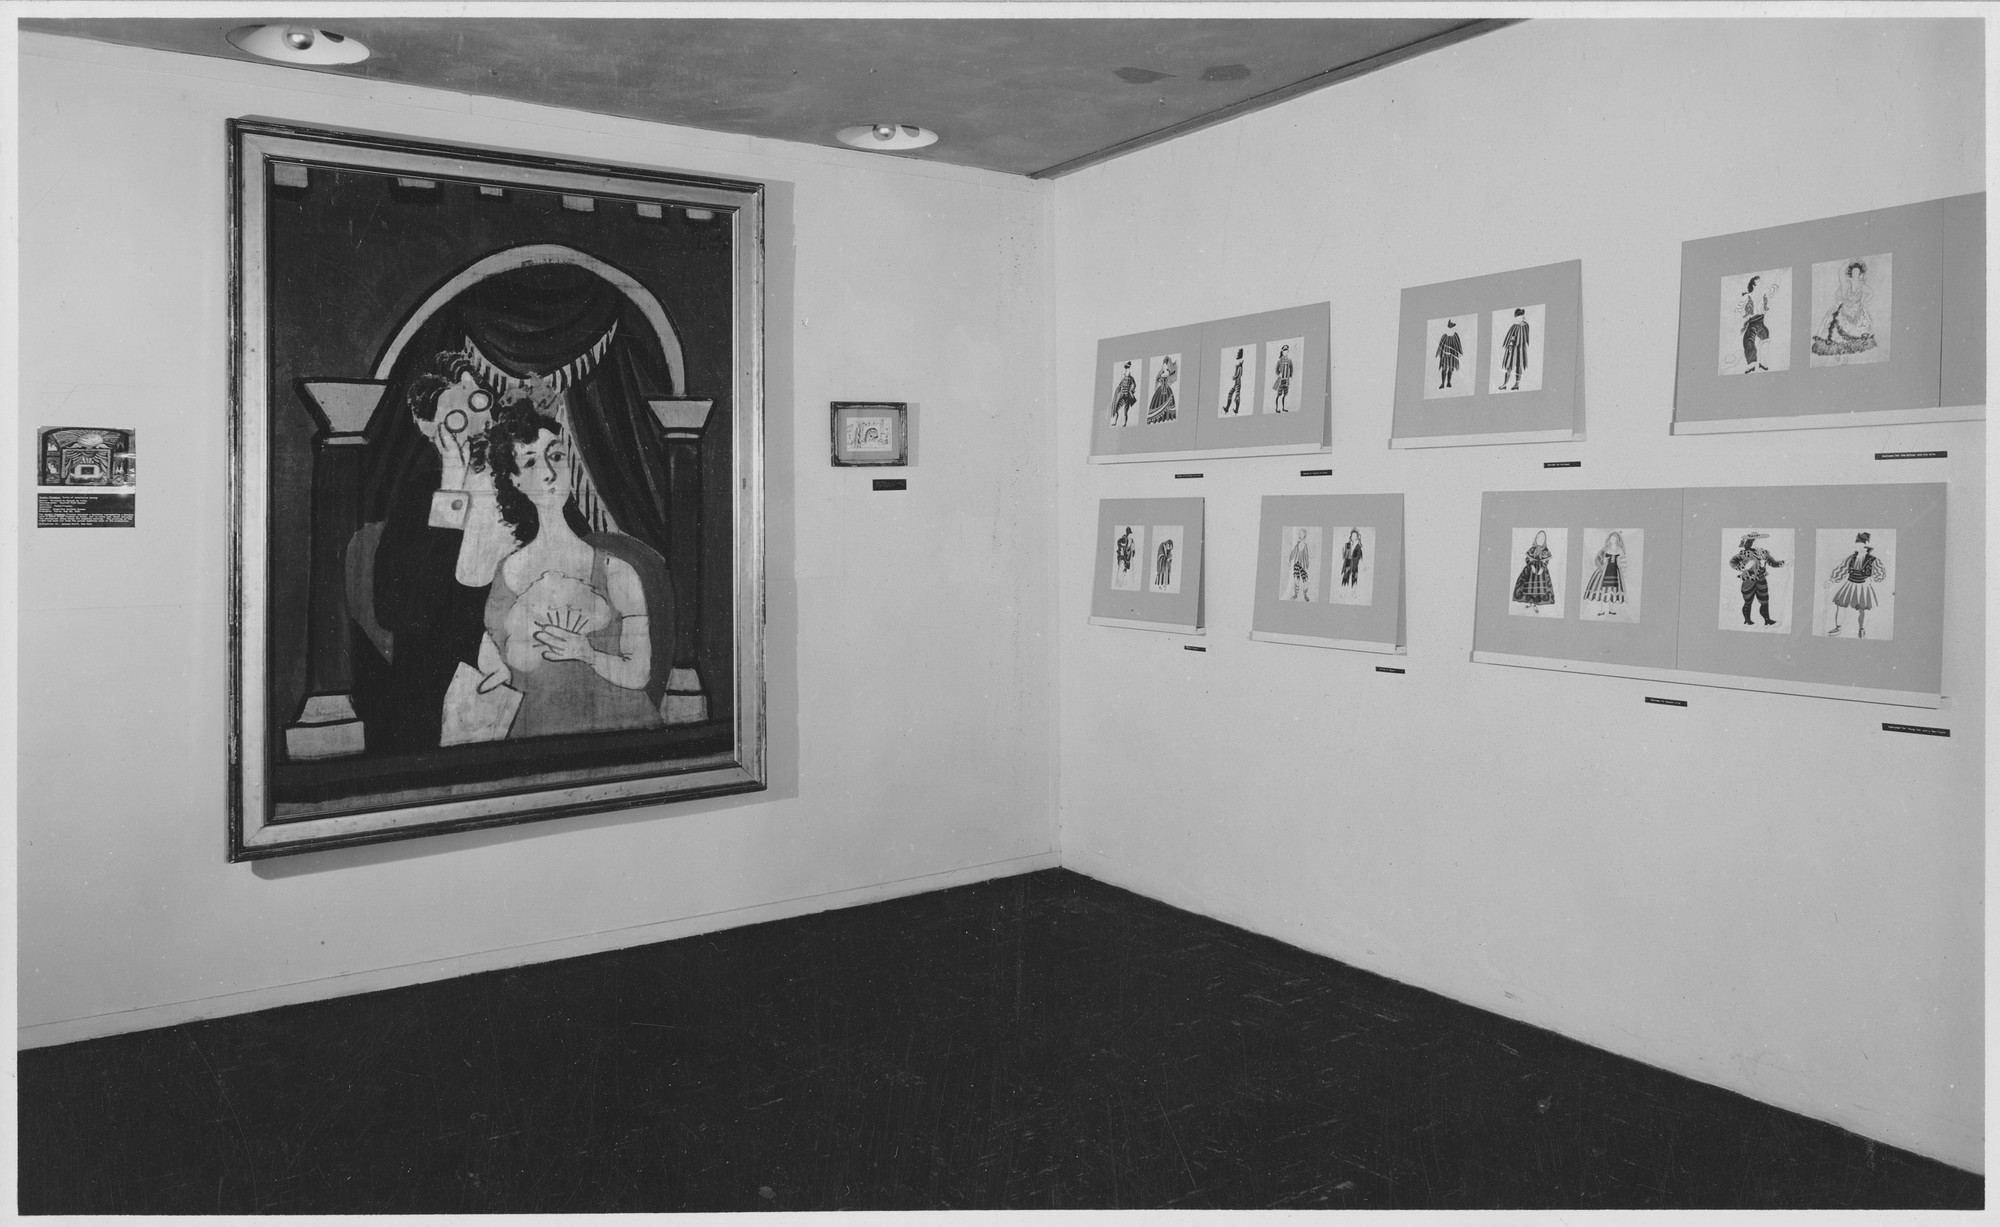 "Installation view of the exhibition, ""'Le Tricorne' by Pablo Picasso."" November 19, 1946–January 13, 1947. Photographic Archive. The Museum of Modern Art Archives, New York. IN335.1. Photograph by Soichi Sunami."